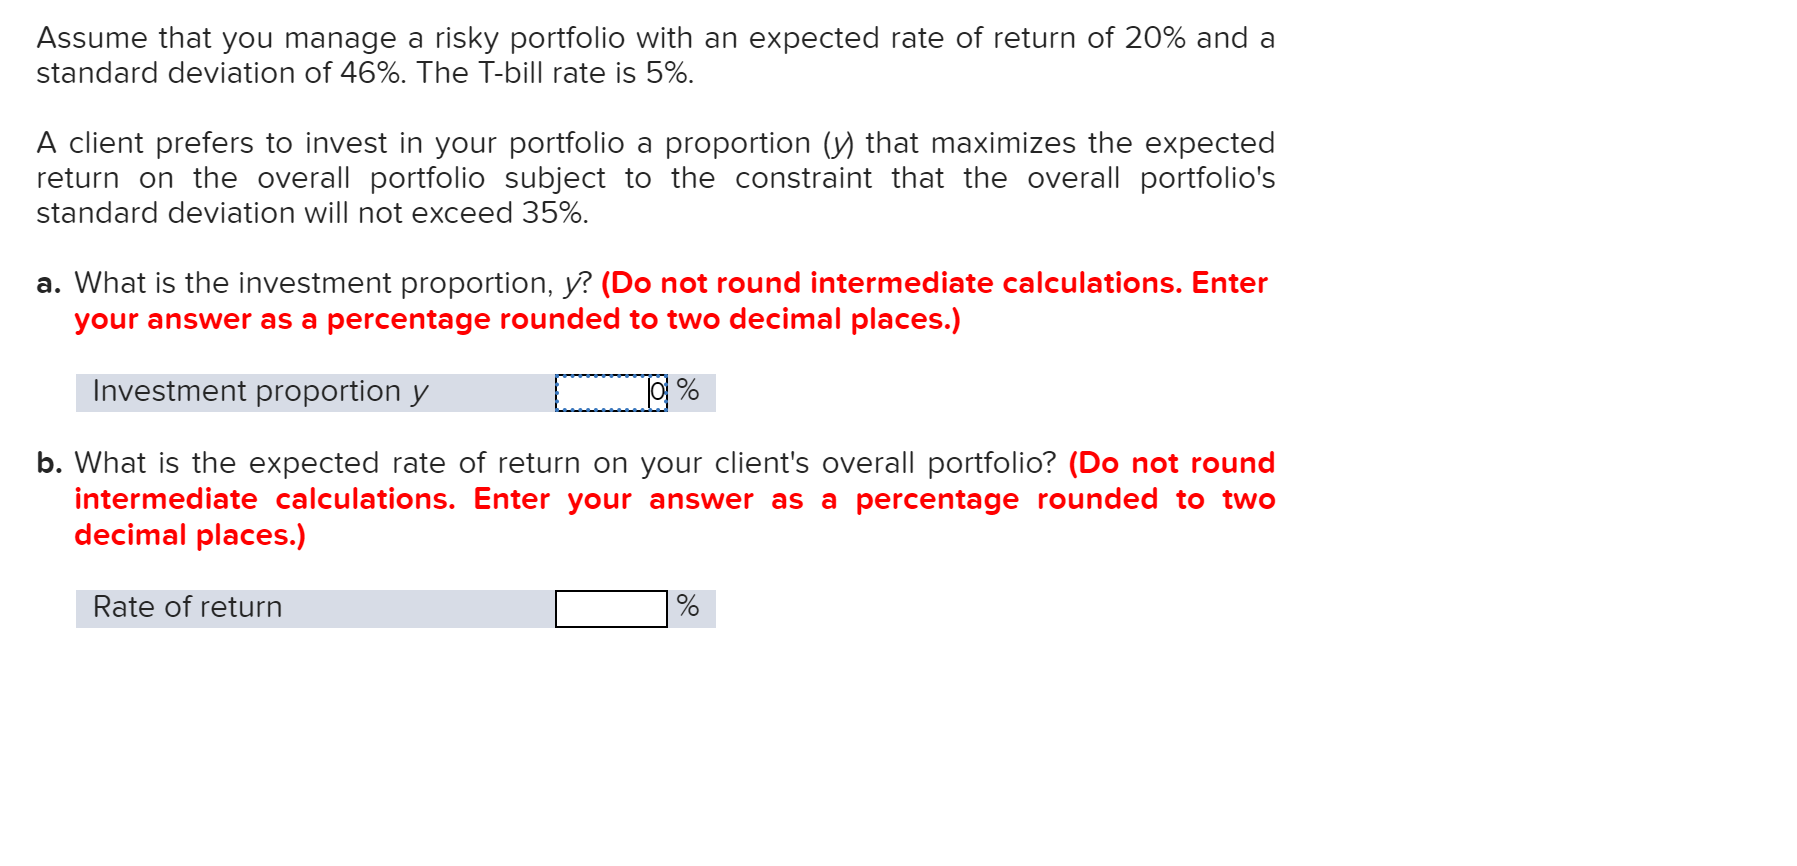 Assume that you manage a risky portfolio with an expected rate of return of 20% and a standard deviation of 46%. The T-bill rate is 5%. A client prefers to invest in your portfolio a proportion (y) that maximizes the expected return on the overall portfolio subject to the constraint that the overall portfolio's standard deviation will not exceed 35% a. What is the investment proportion, y? (Do not round intermediate calculations. Enter your answer as a percentage rounded to two decimal places.) Investment proportion y b. What is the expected ra intermediate calculations. Enter your answer as a percentage rounded to two decimal places.) of return on your client's overall portfolio? (Do not roun Rate of return